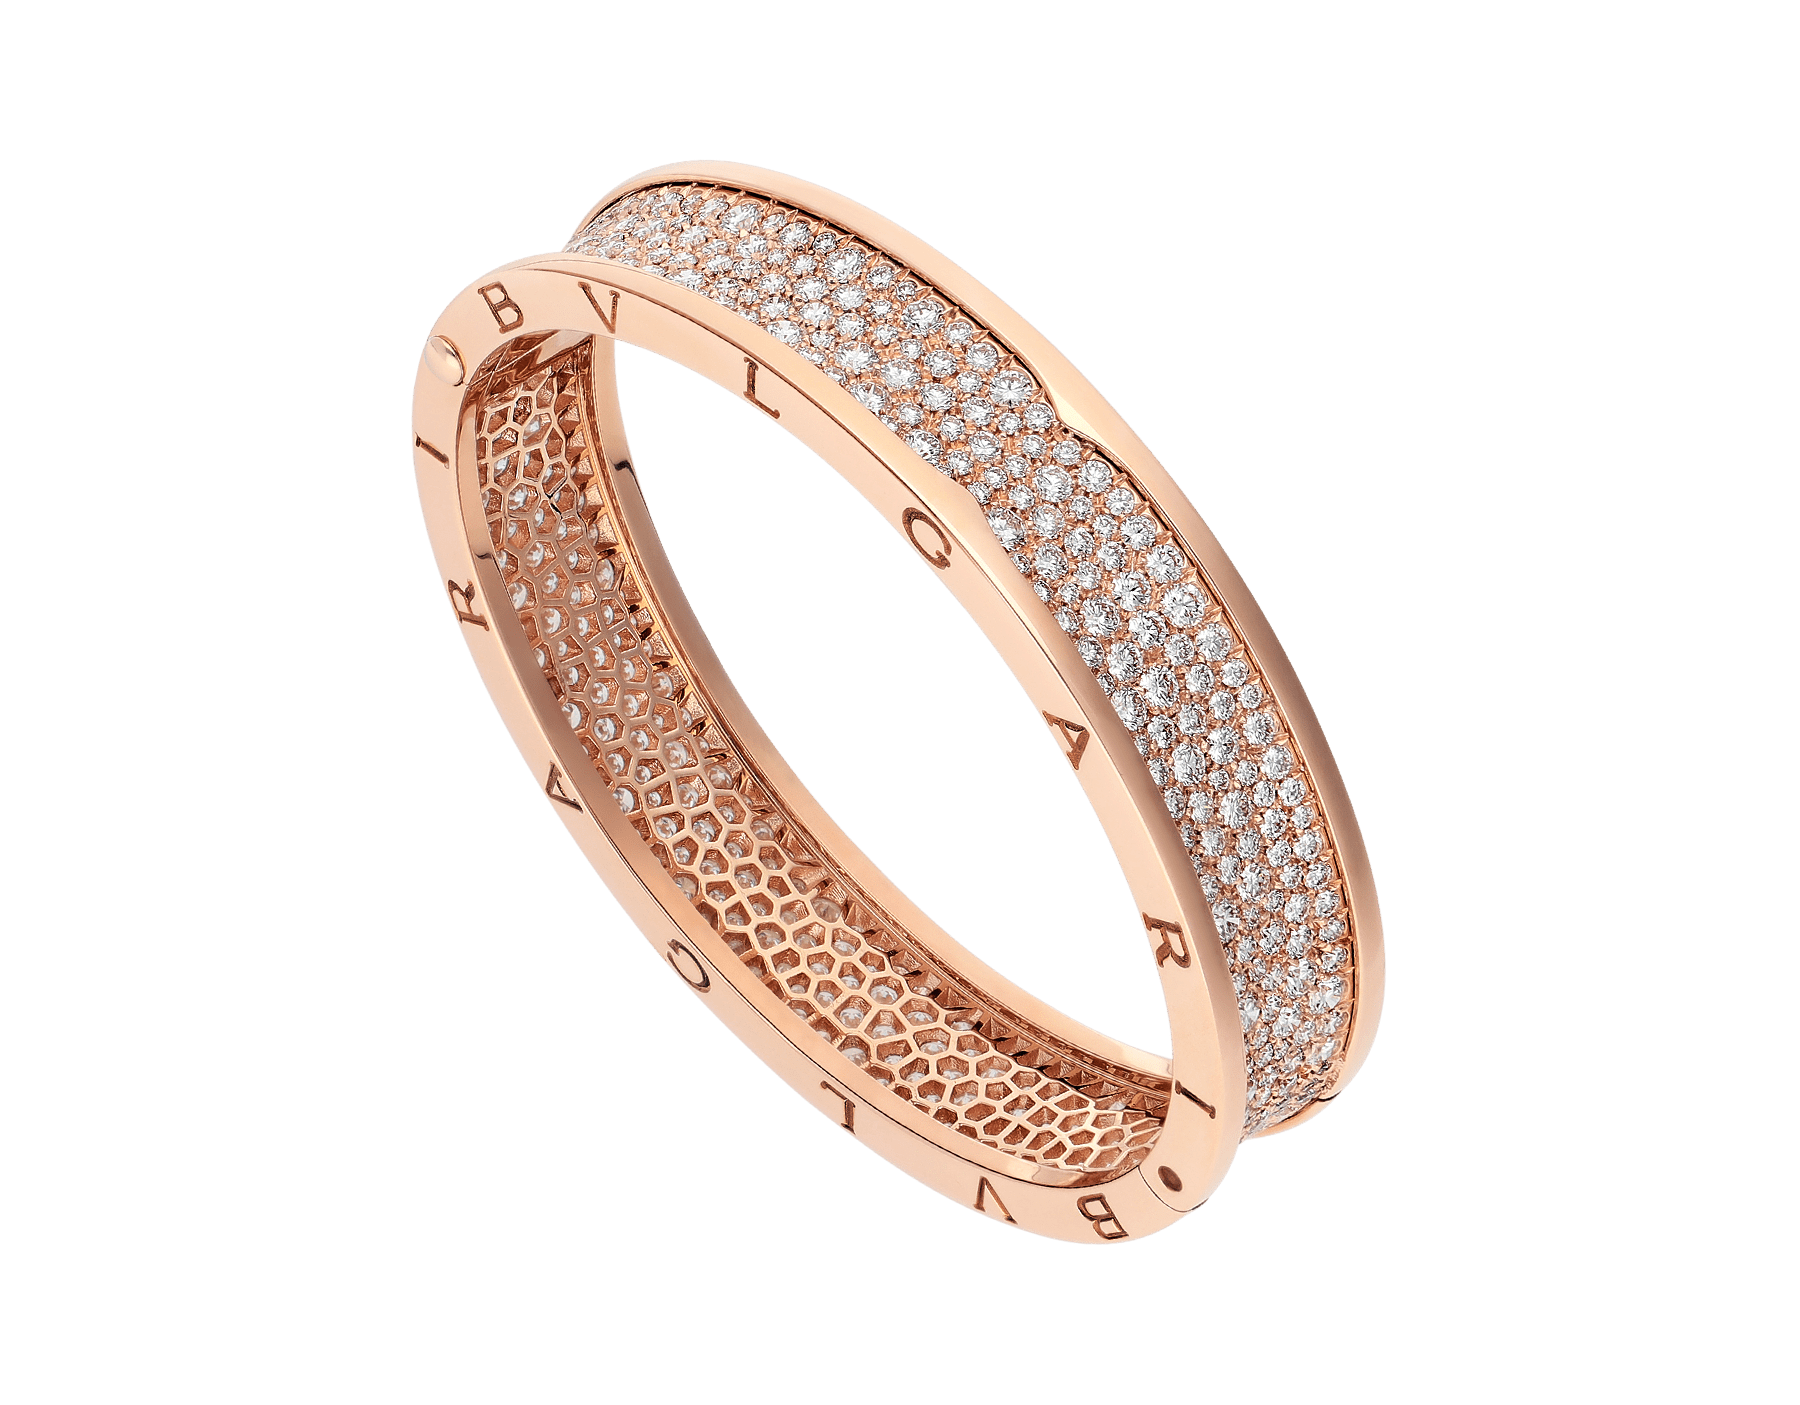 B.zero1 large bangle bracelet in 18 kt rose gold set with pavé diamonds on the spiral. BR856163 image 1